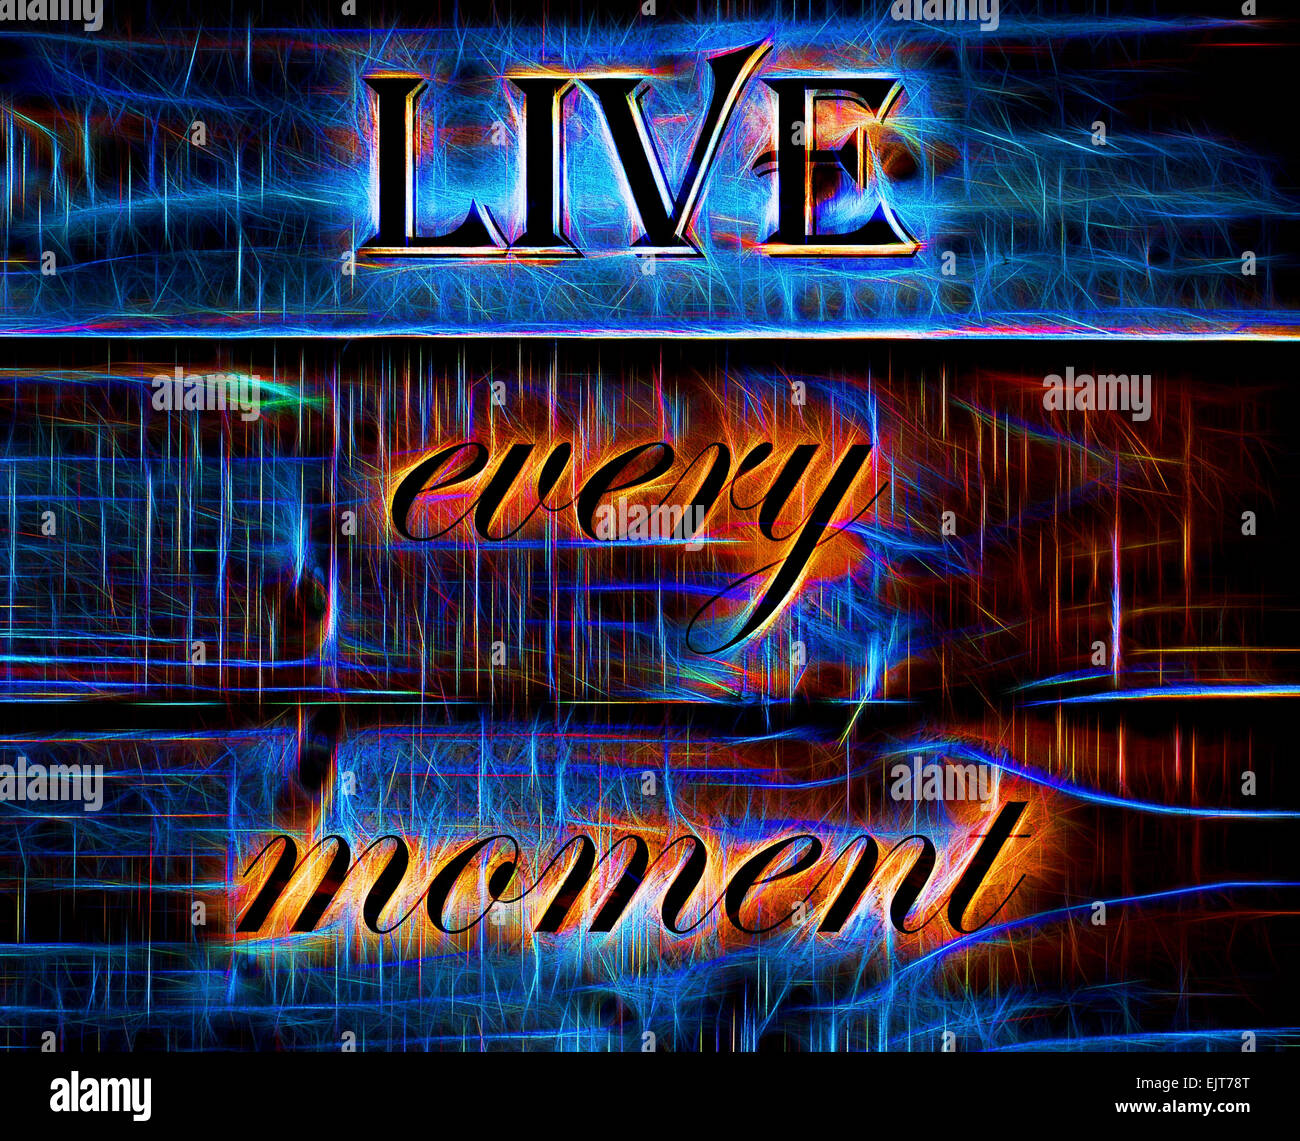 Live Every Moment quote - Stock Image